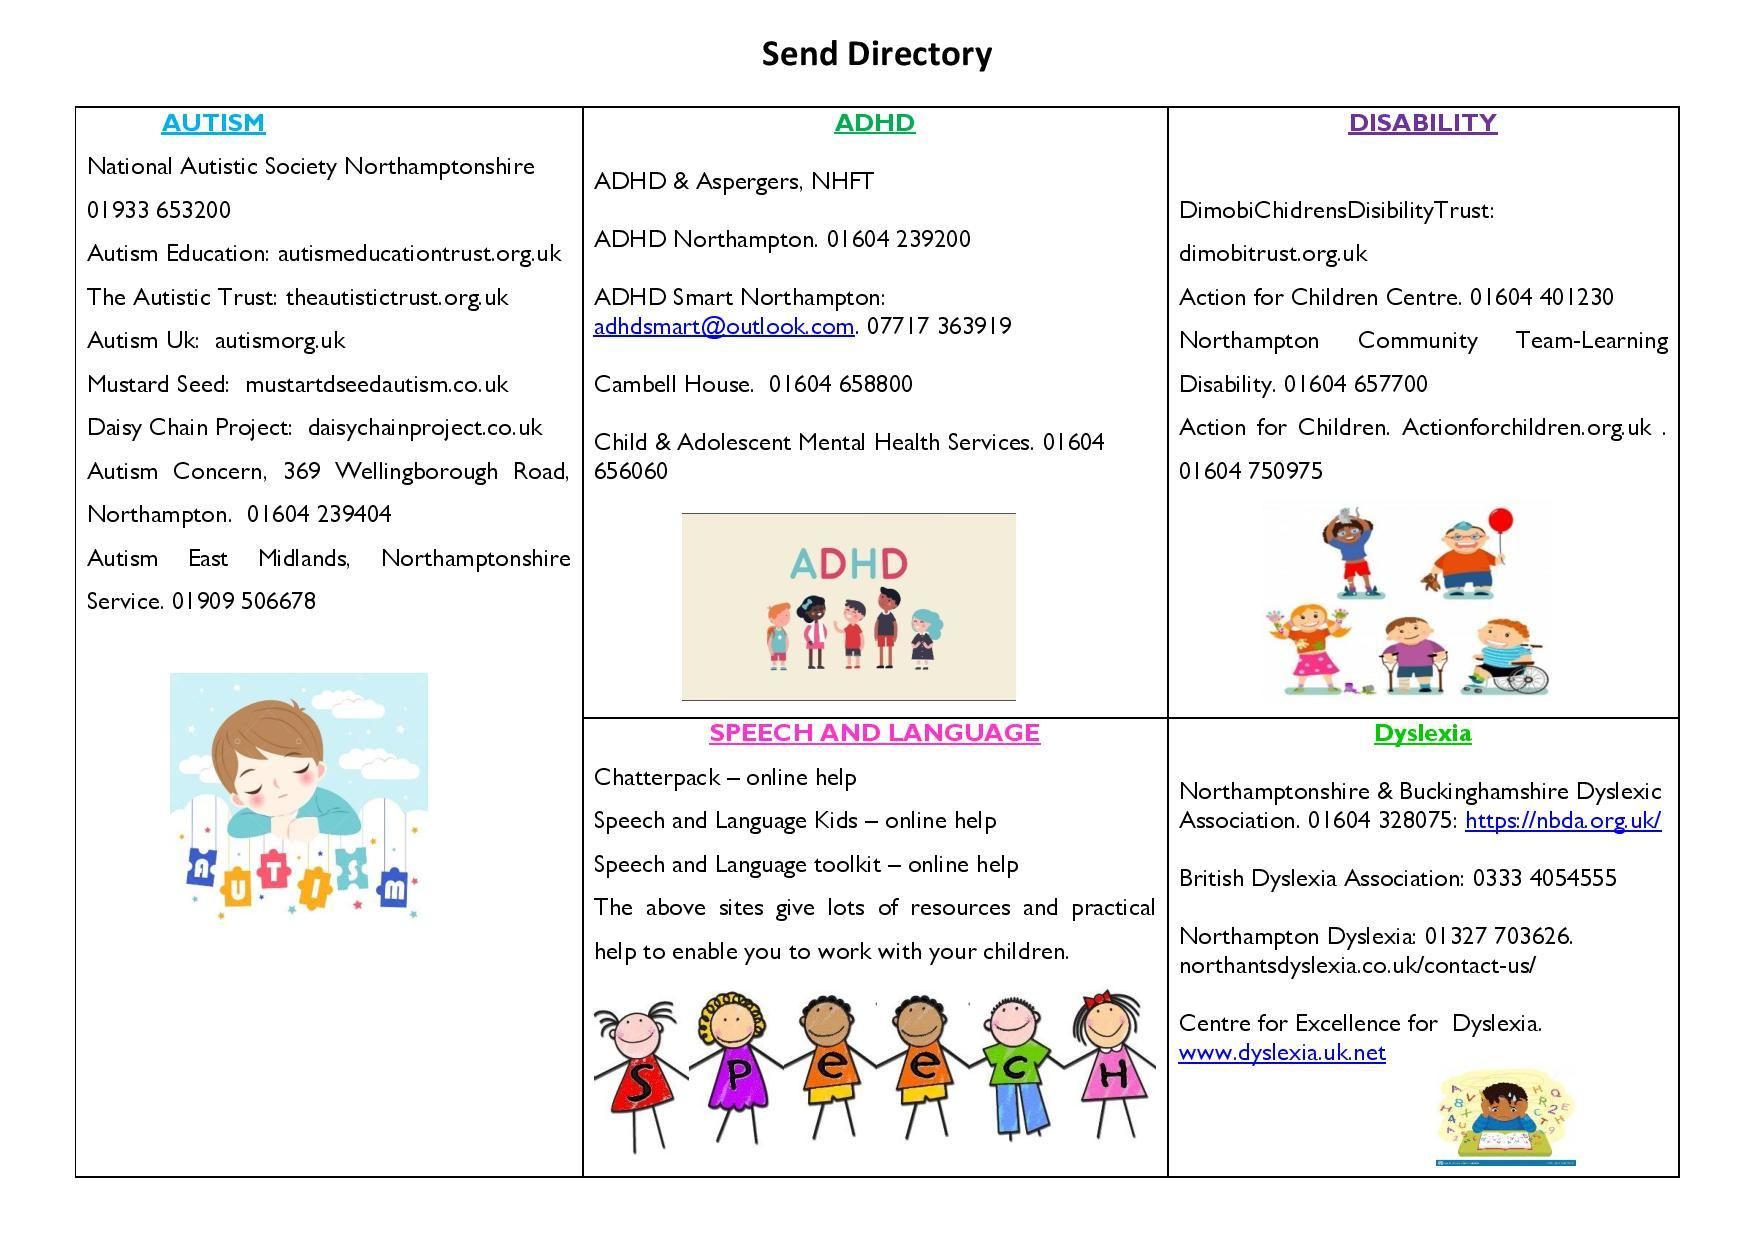 Send Directory page 001